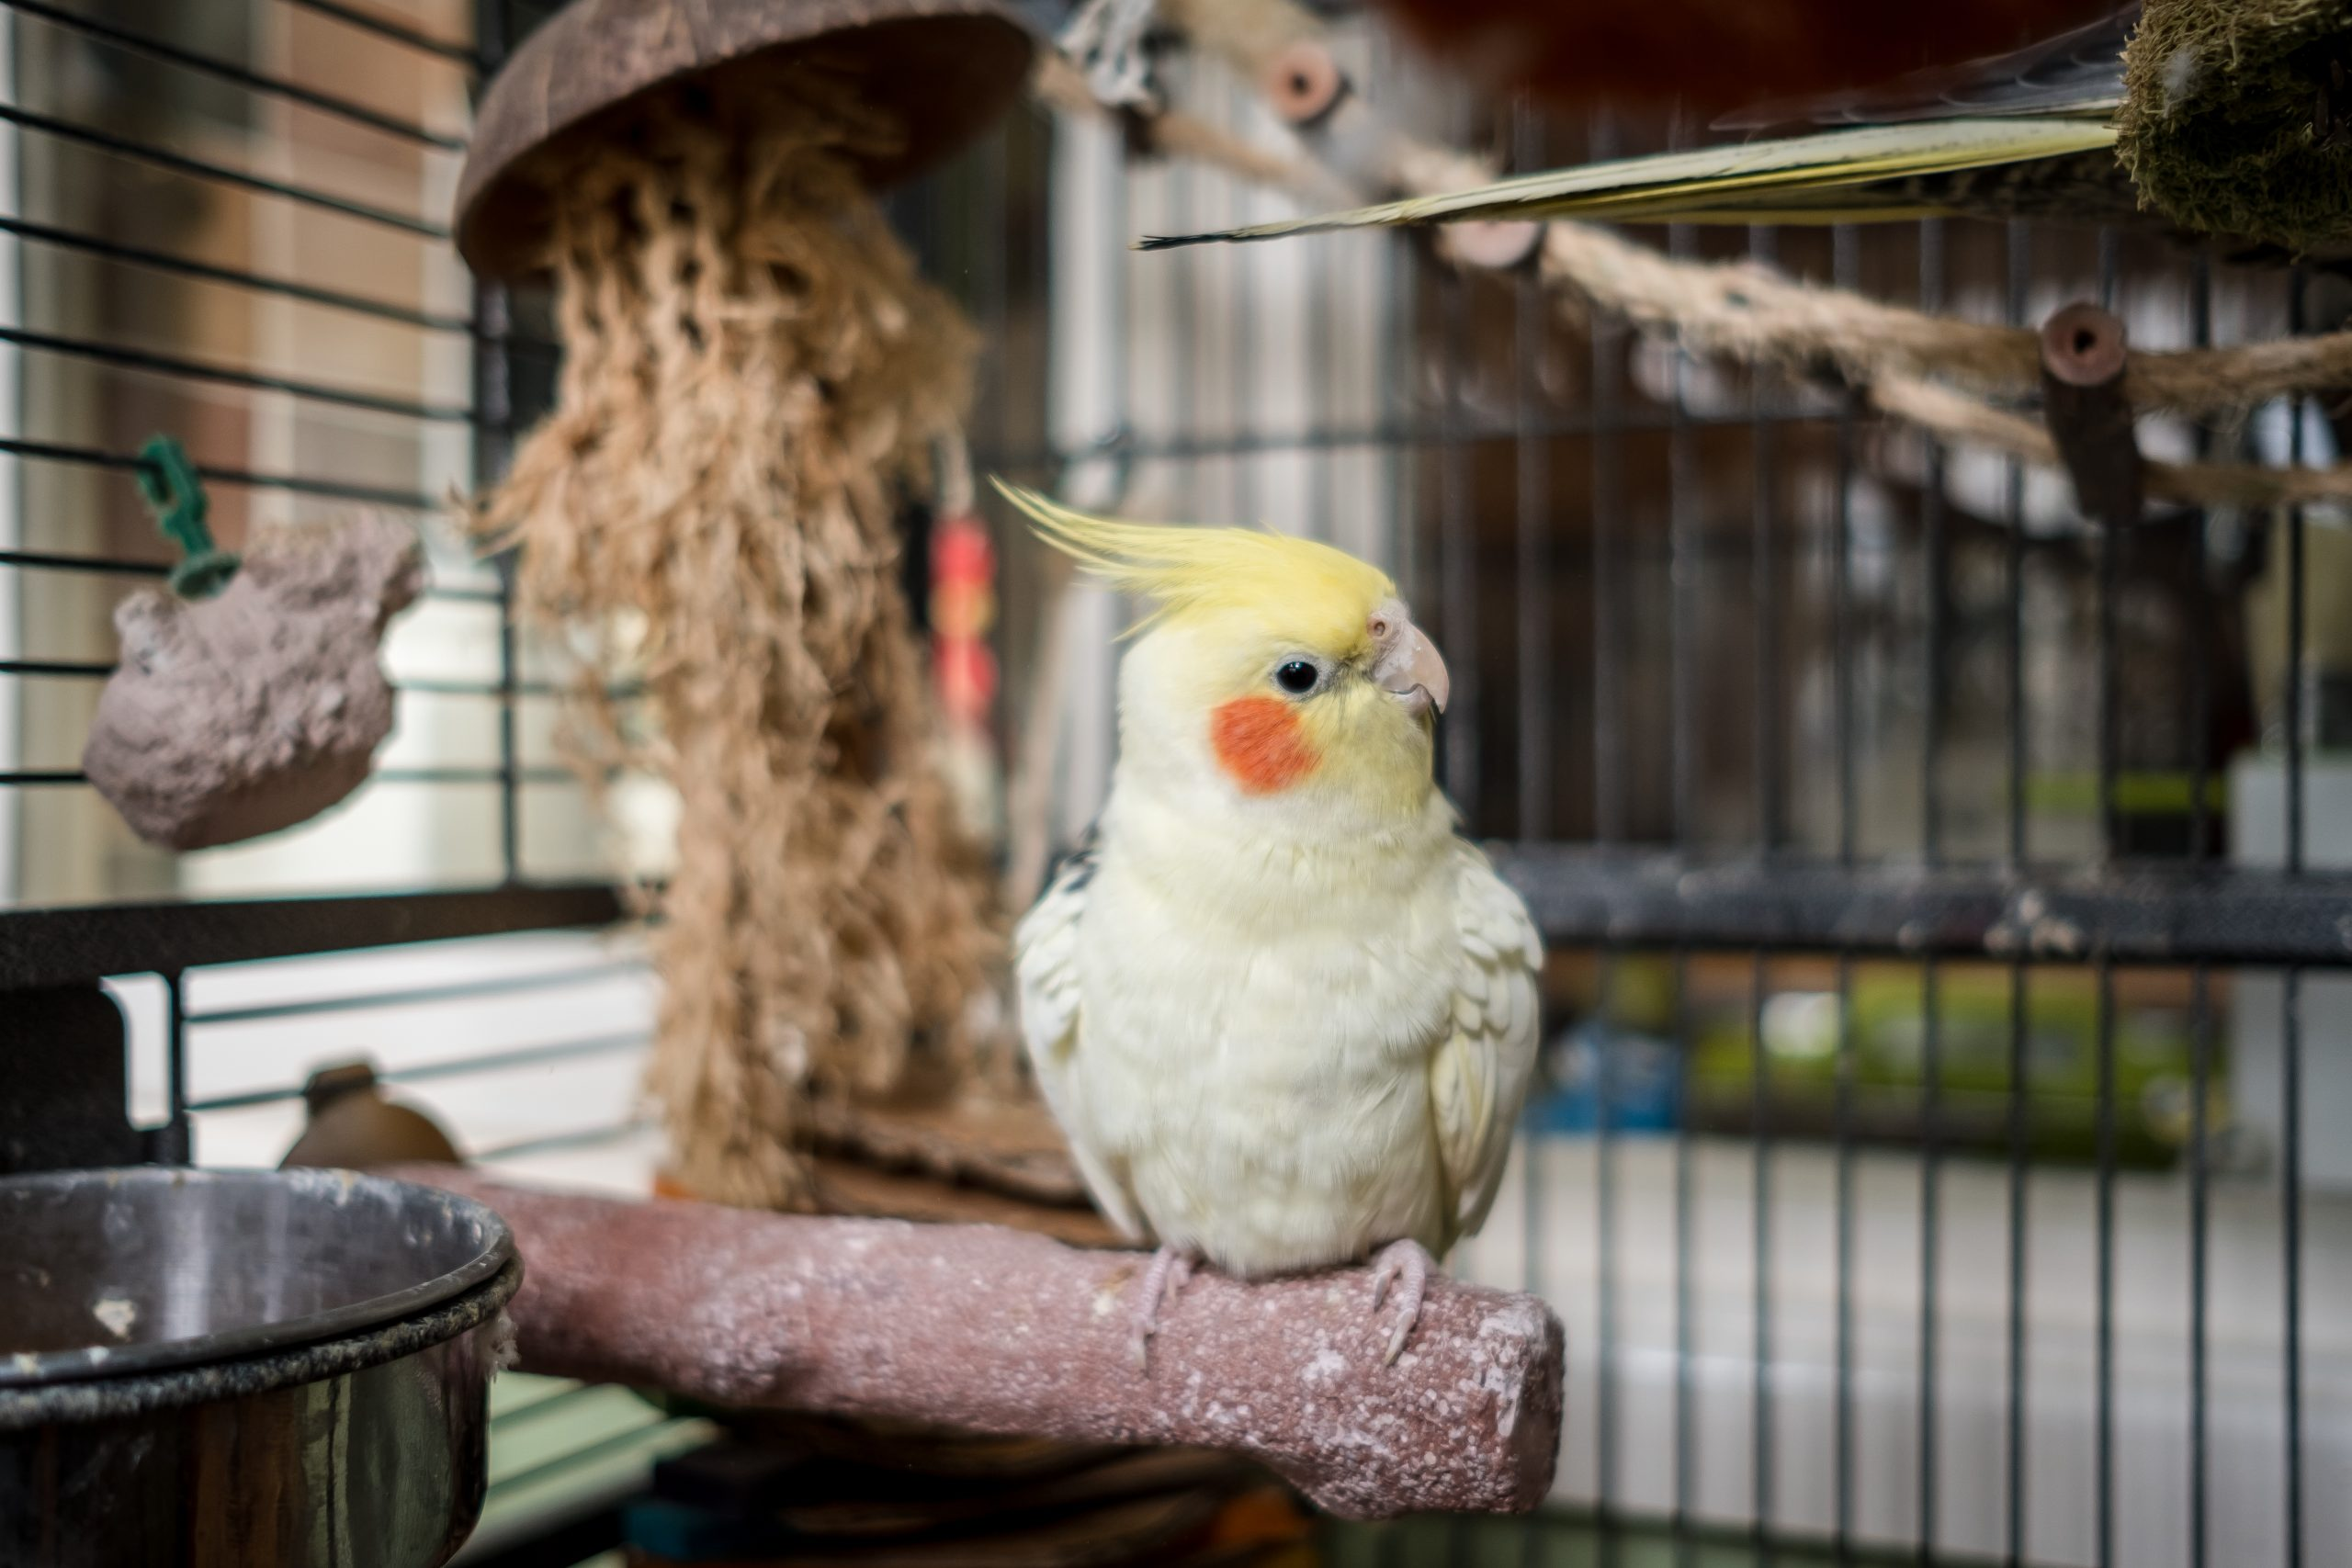 Adult male cockatiel seen perched within his opened bird cage, located in a conservatory. The top of the image shows the tail of his breeding mate together with various toys in the bird cage.